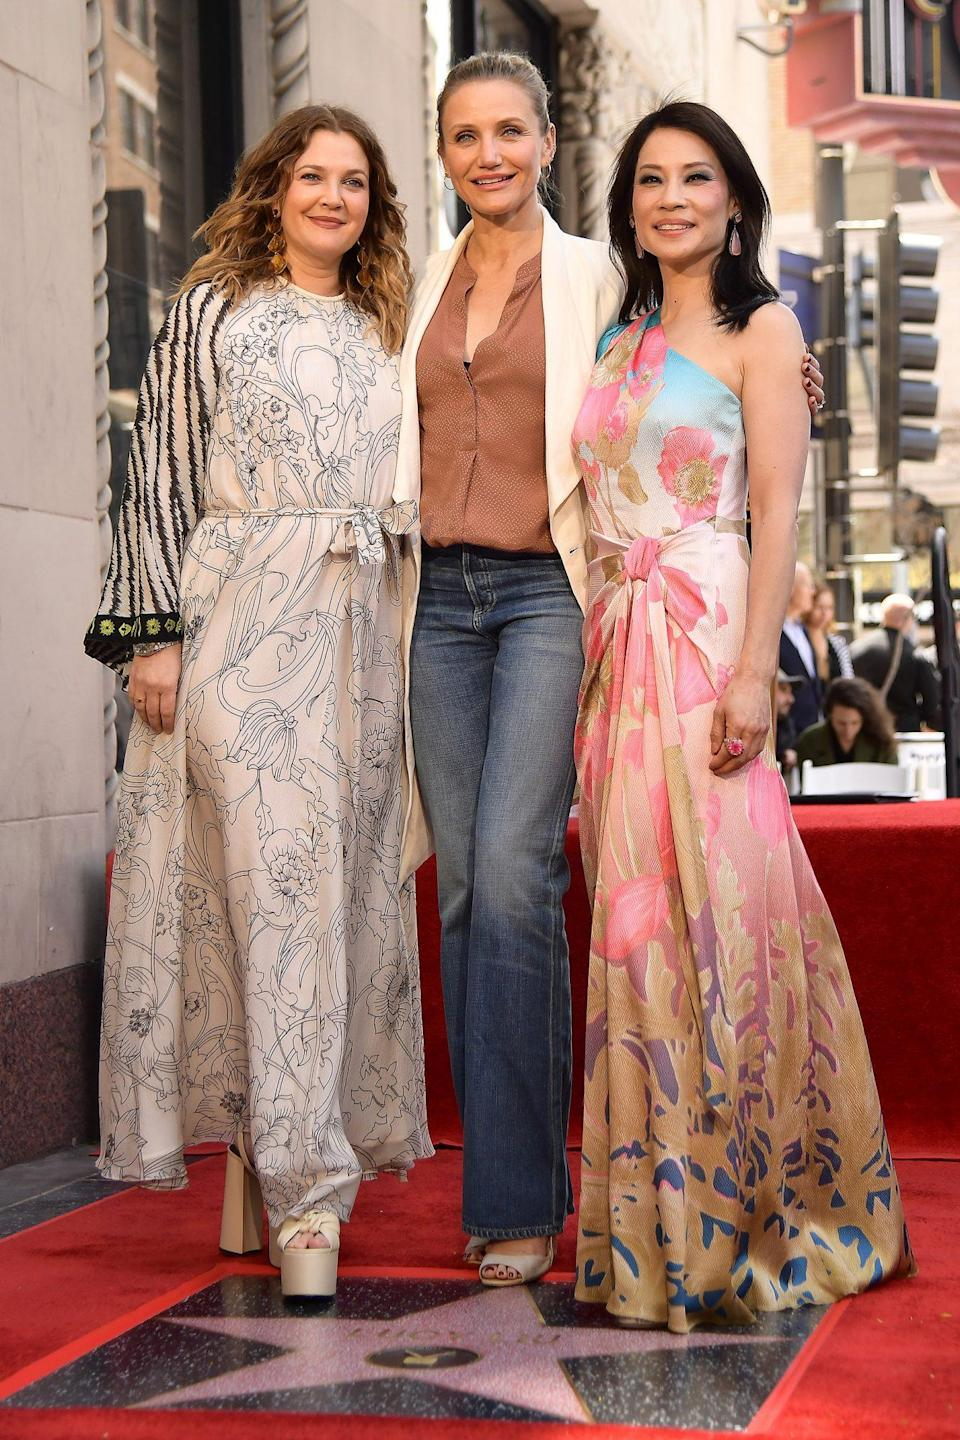 """<p>The girls reunited to celebrate Liu <a href=""""https://people.com/movies/charlies-angels-reunion-lucy-liu-drew-barrymore-cameron-diaz-at-walk-of-fame-ceremony/"""" rel=""""nofollow noopener"""" target=""""_blank"""" data-ylk=""""slk:receiving her star"""" class=""""link rapid-noclick-resp"""">receiving her star</a> on the Hollywood Walk of Fame in May 2019. </p> <p>""""My dear Angels, it's a 20-year reunion,"""" Liu said during the ceremony, as she looked over at her friends. """"20 years ago we were an elite crime-fighting team, and now look at us.""""</p>"""